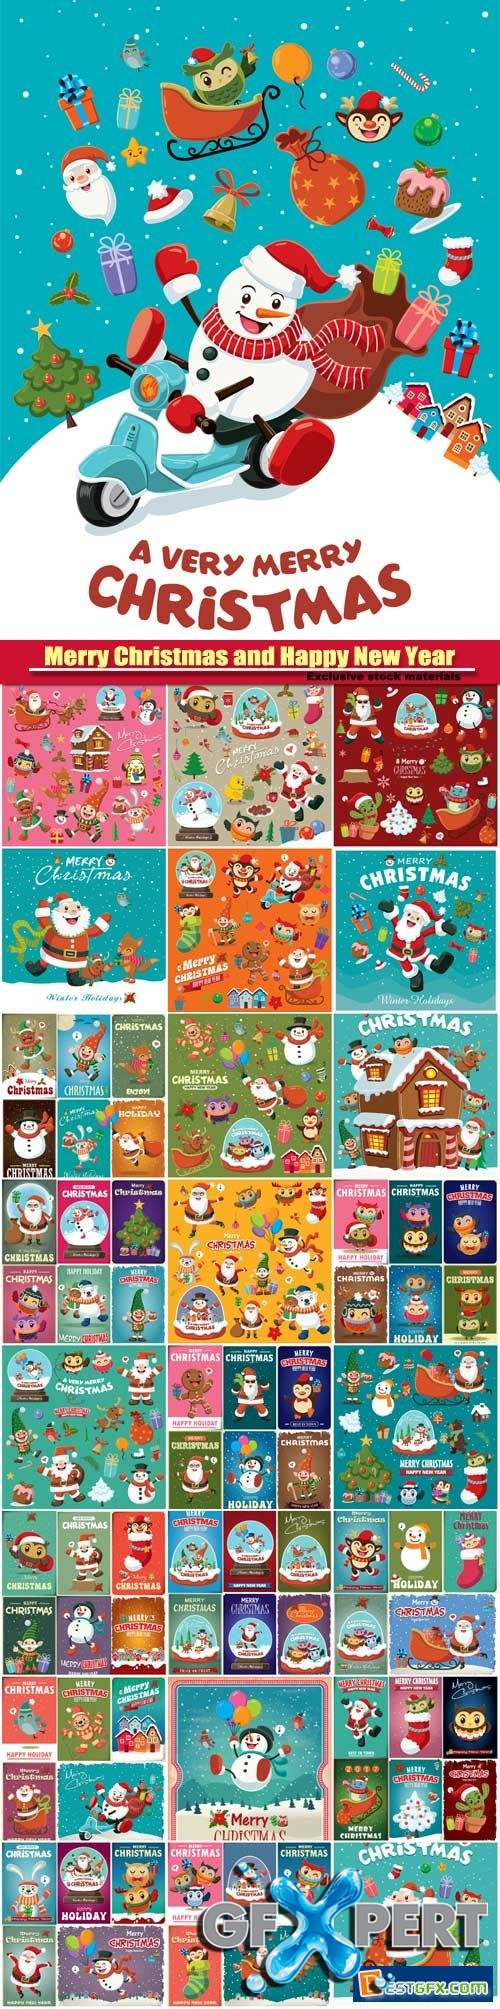 Vintage Christmas vector poster design set